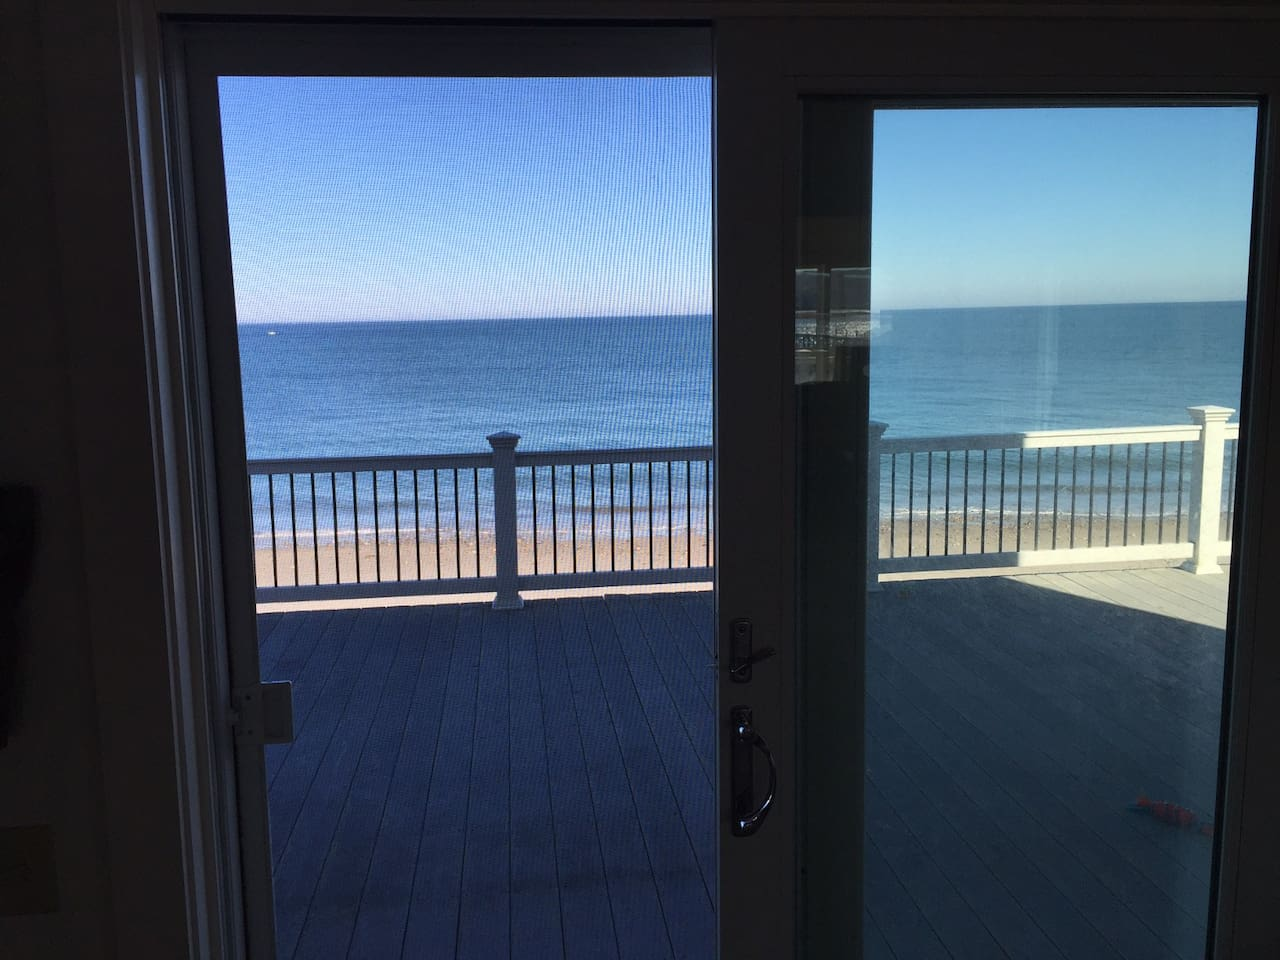 View to Ocean: yup its right out there, the Atlantic!